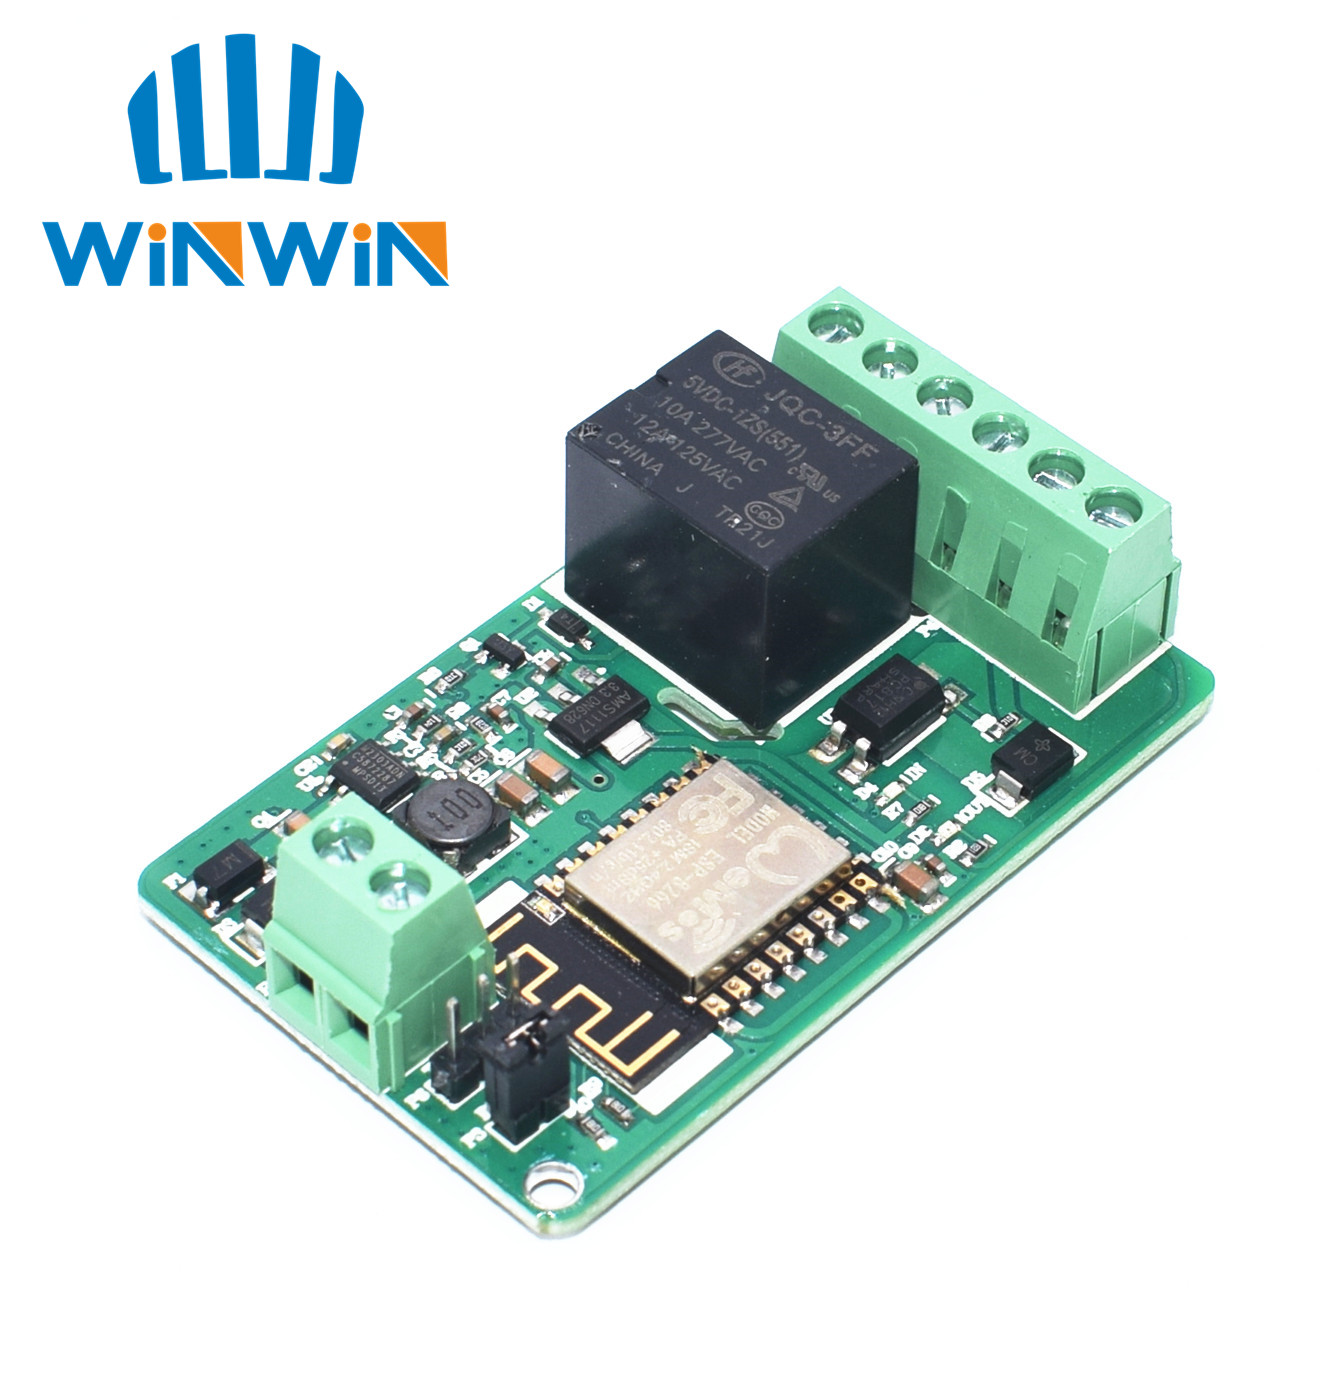 1pcs Hlk Pm01 Pm03 Pm12 Ac Dc 220v Mini Power Supply Module Solid State Relay Farnell A21 New Arrival Green Esp8266 10a Network Wifi Input 7v